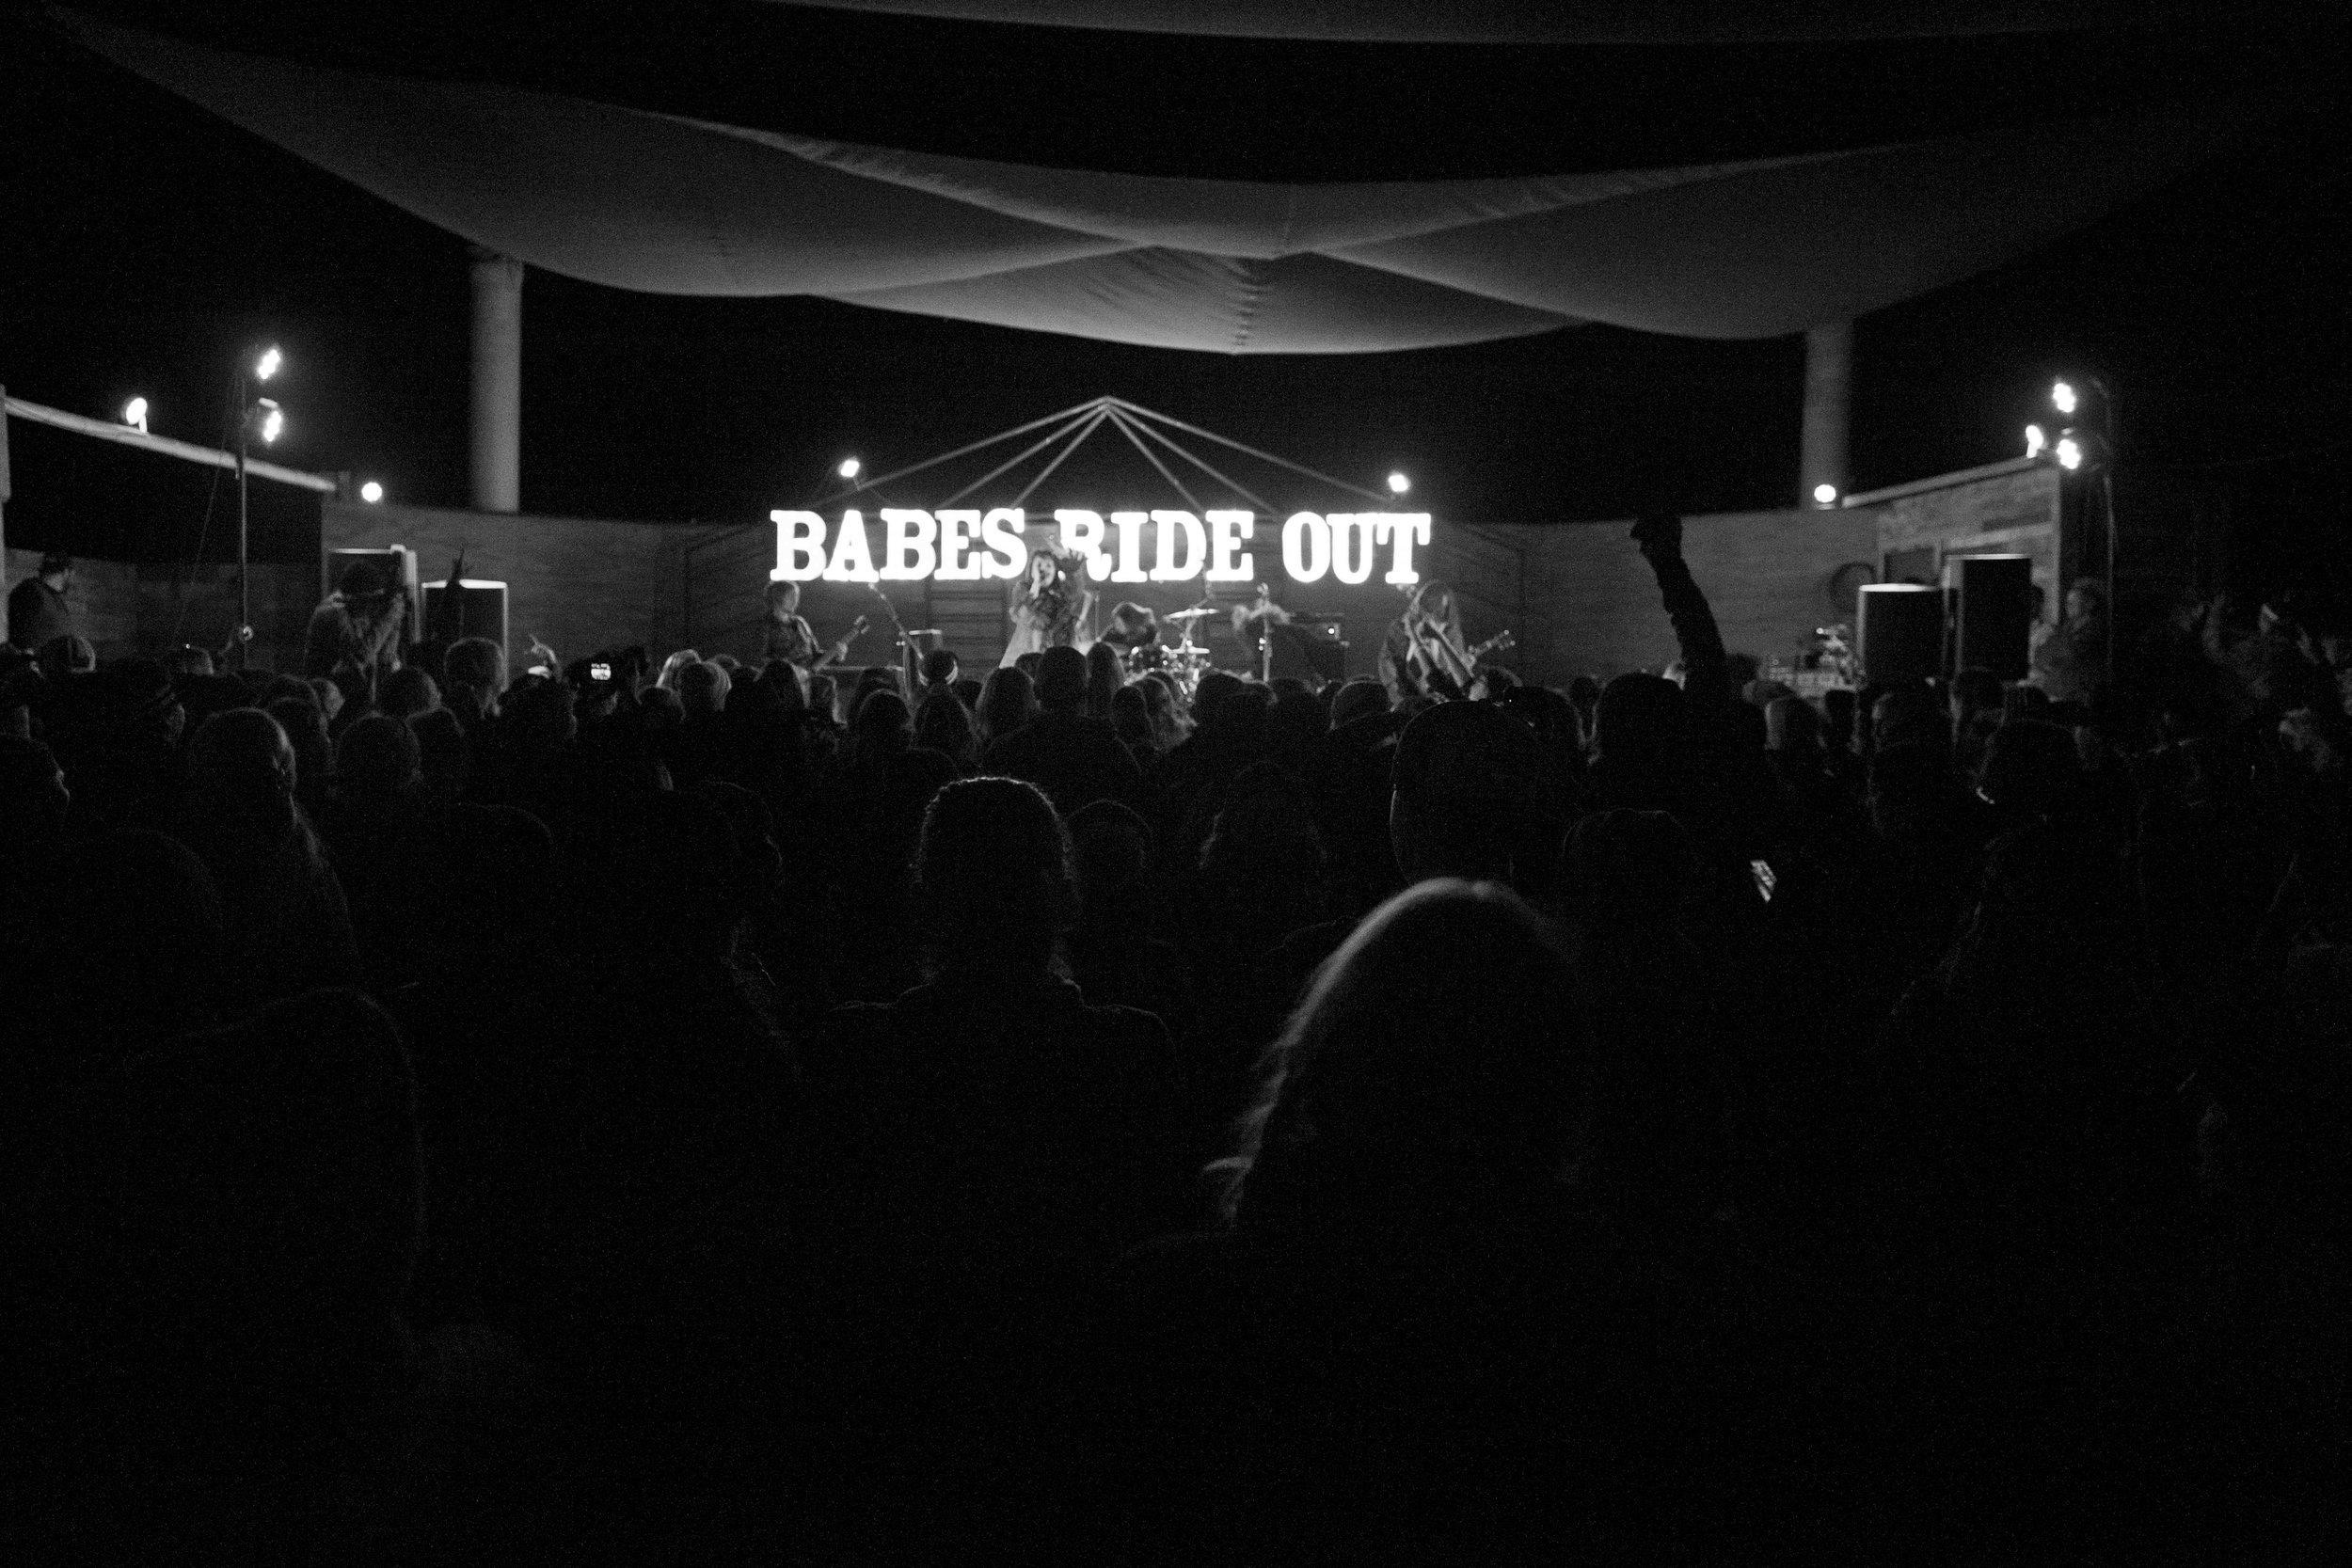 Babes Ride Out 6 Image.jpg